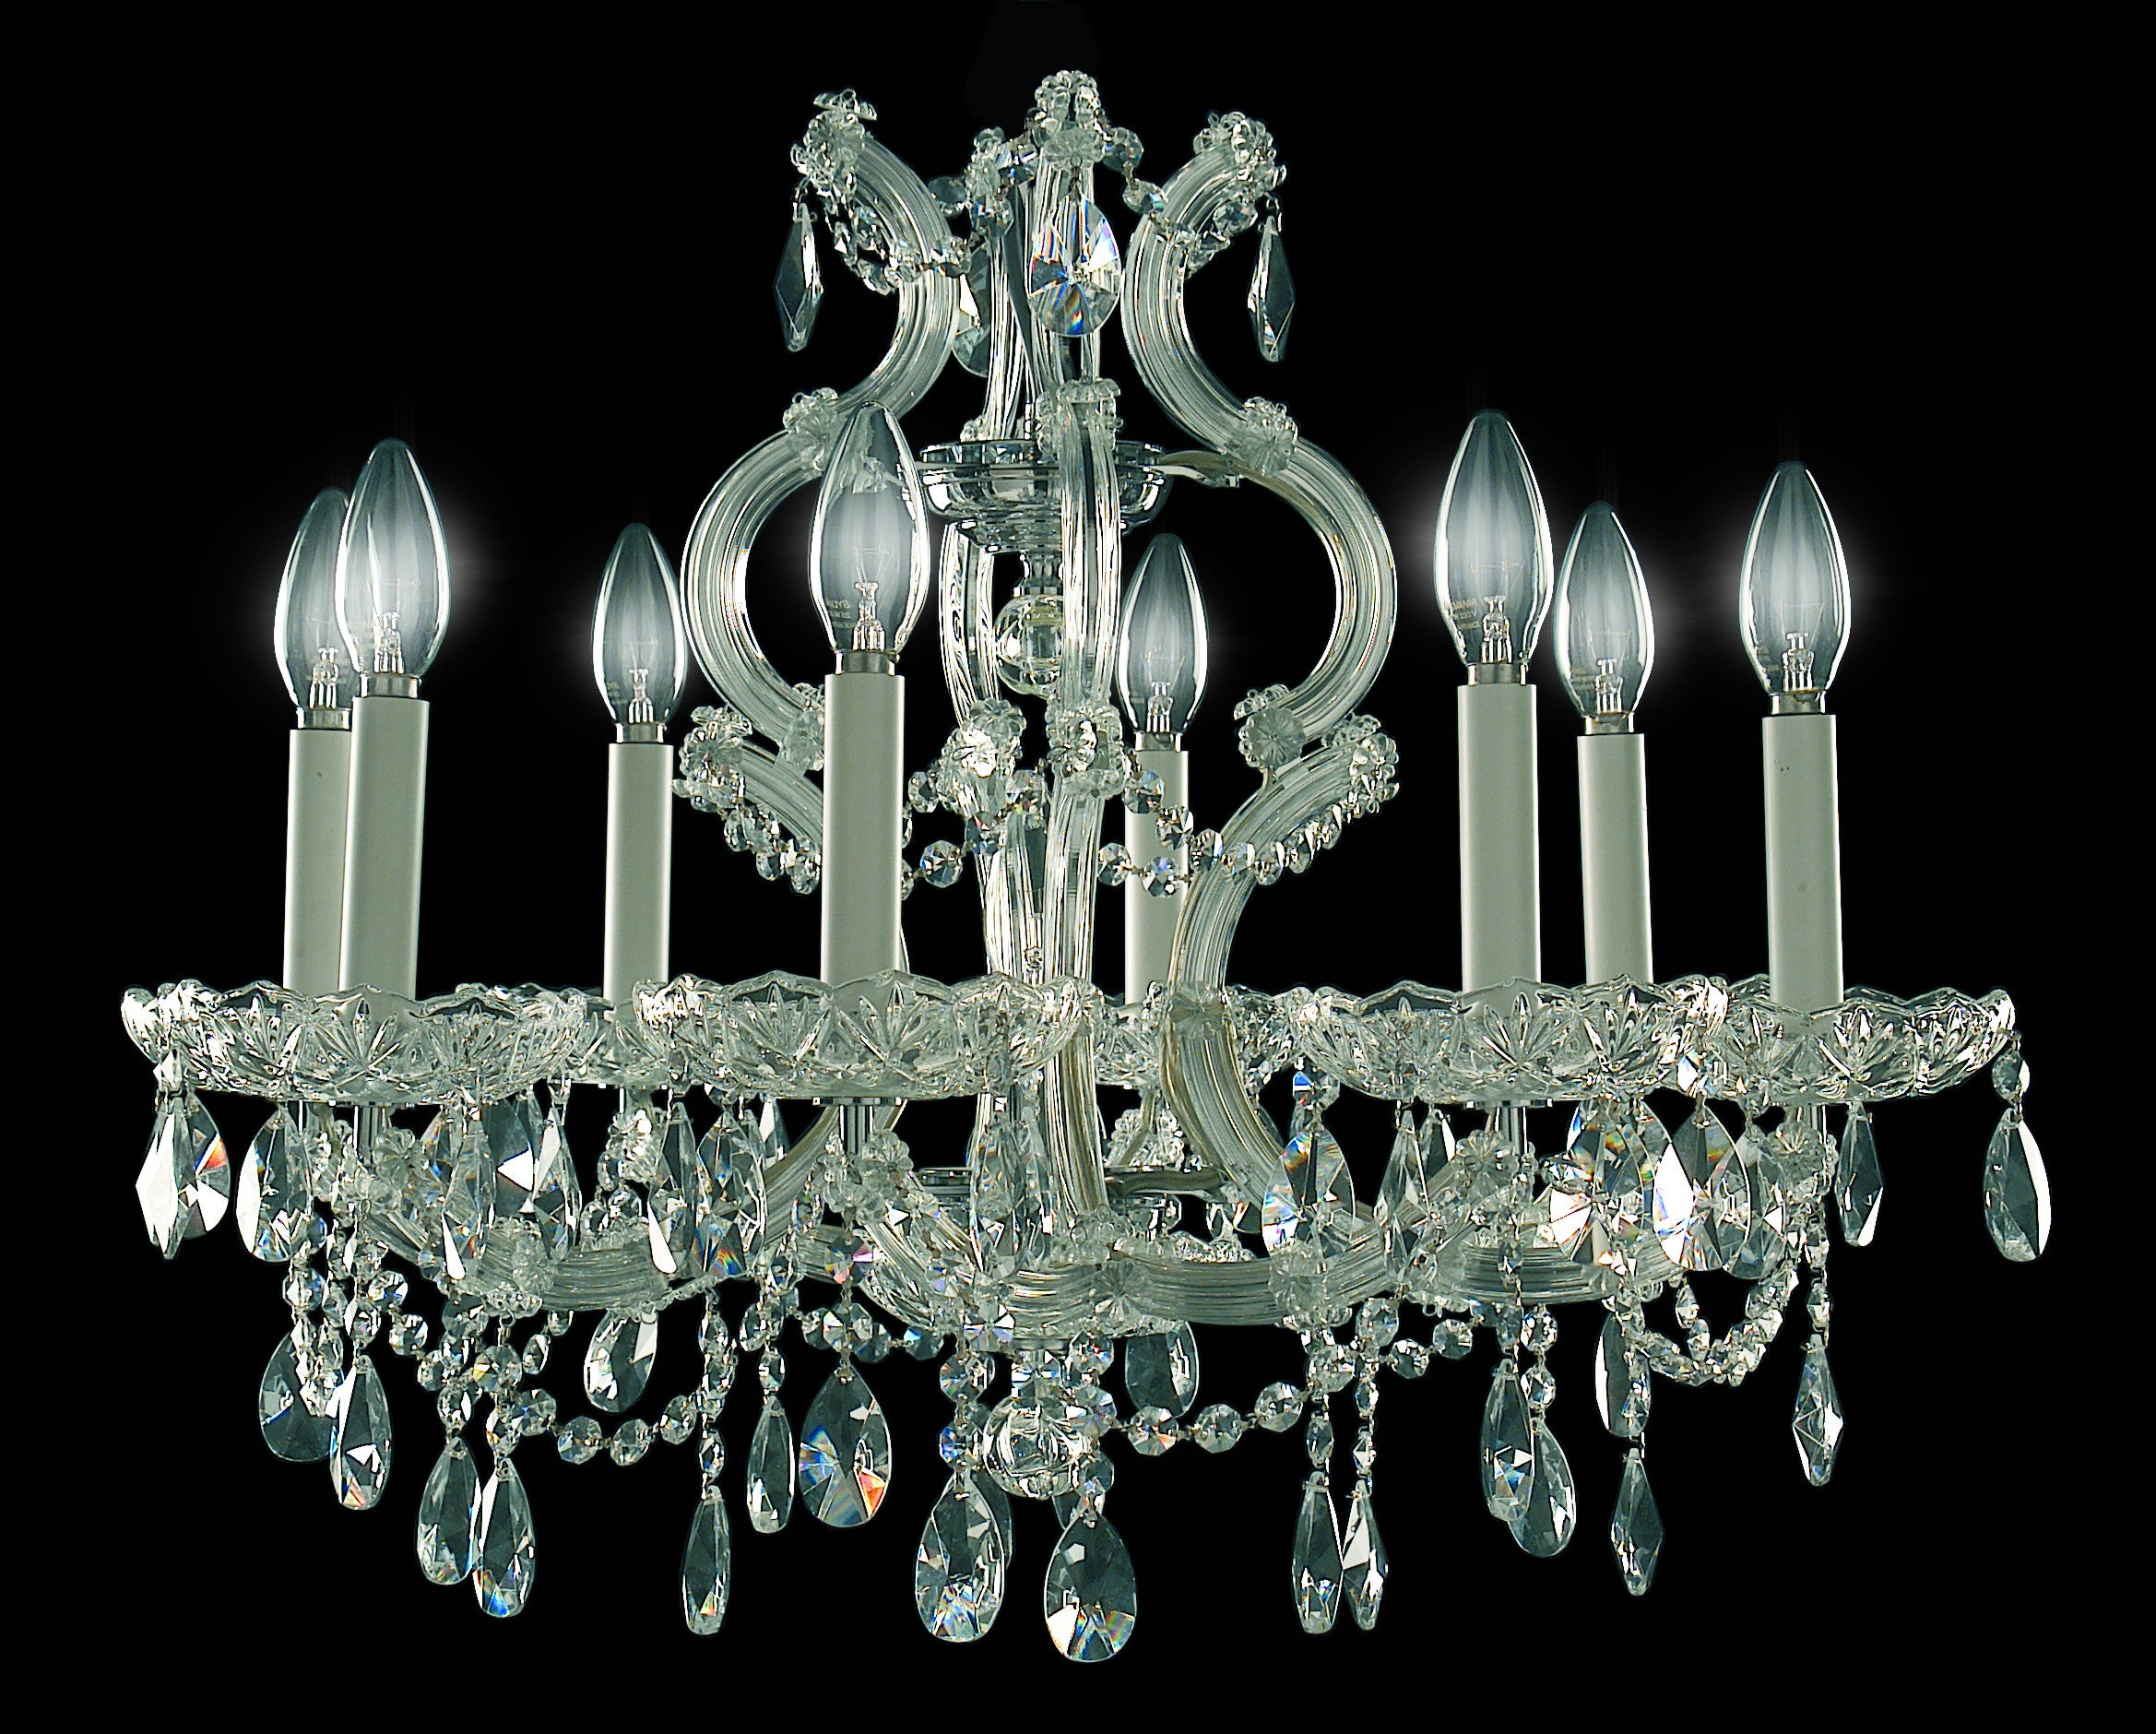 Queensway Chandelier 9 Light - David Malik & Son